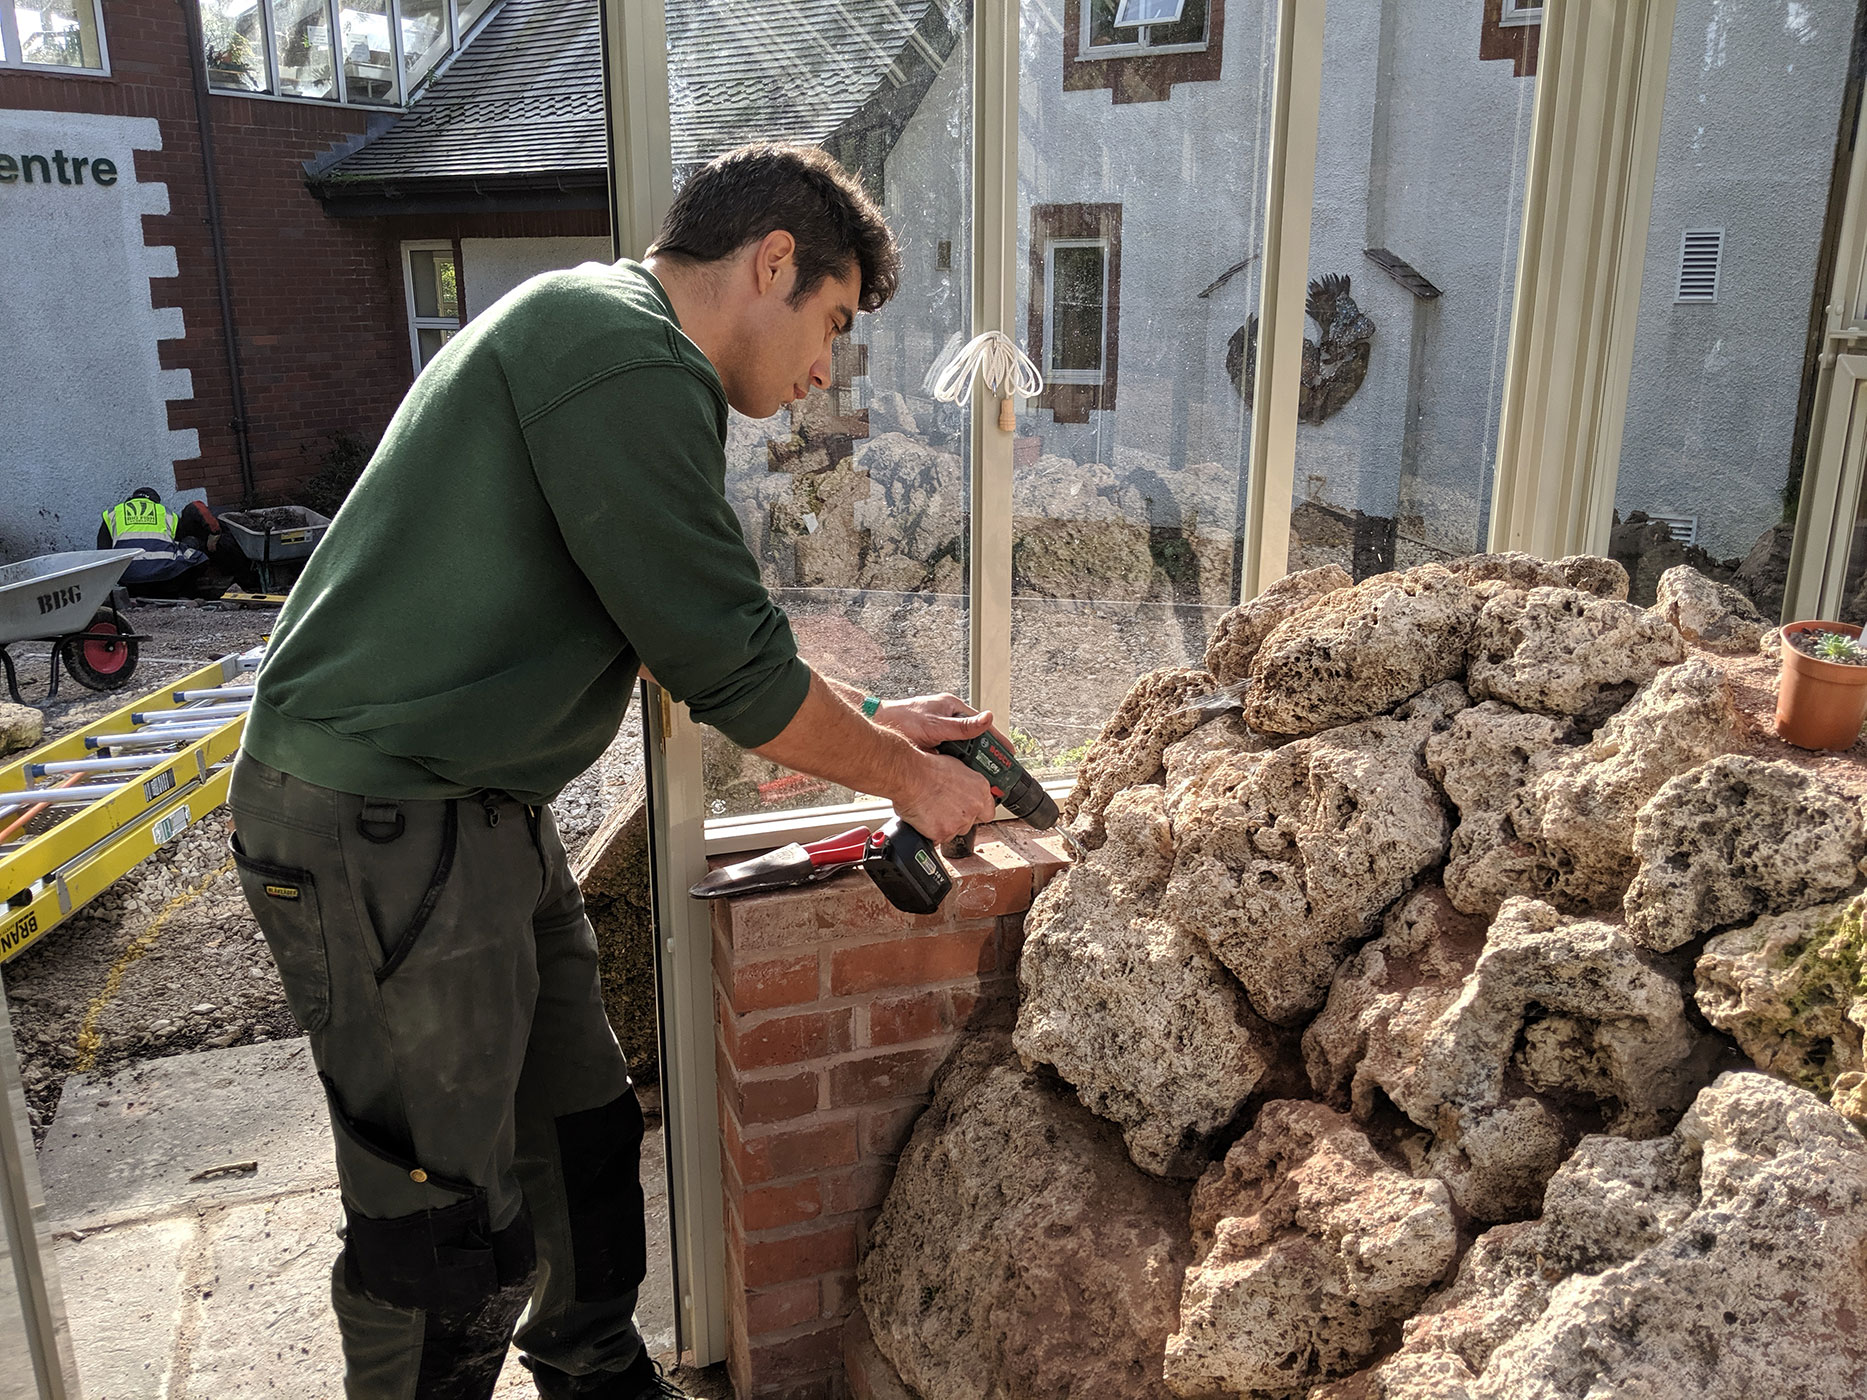 Drilling in and in-between tufa rocks in order to create planting holes.